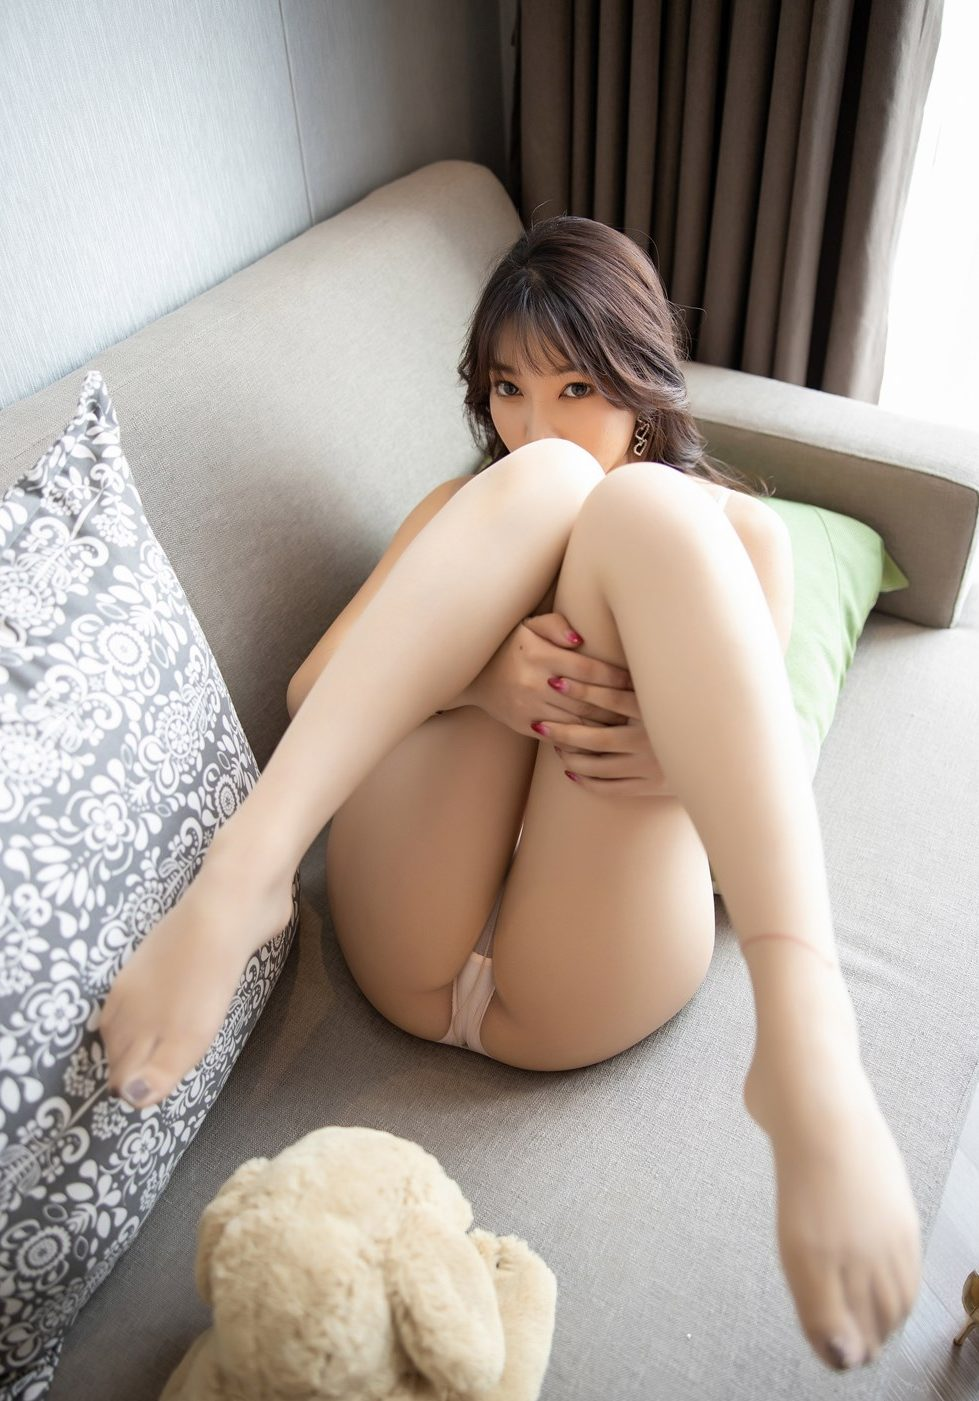 xxx photos: booty sexy asian girl gets naughty with her toy